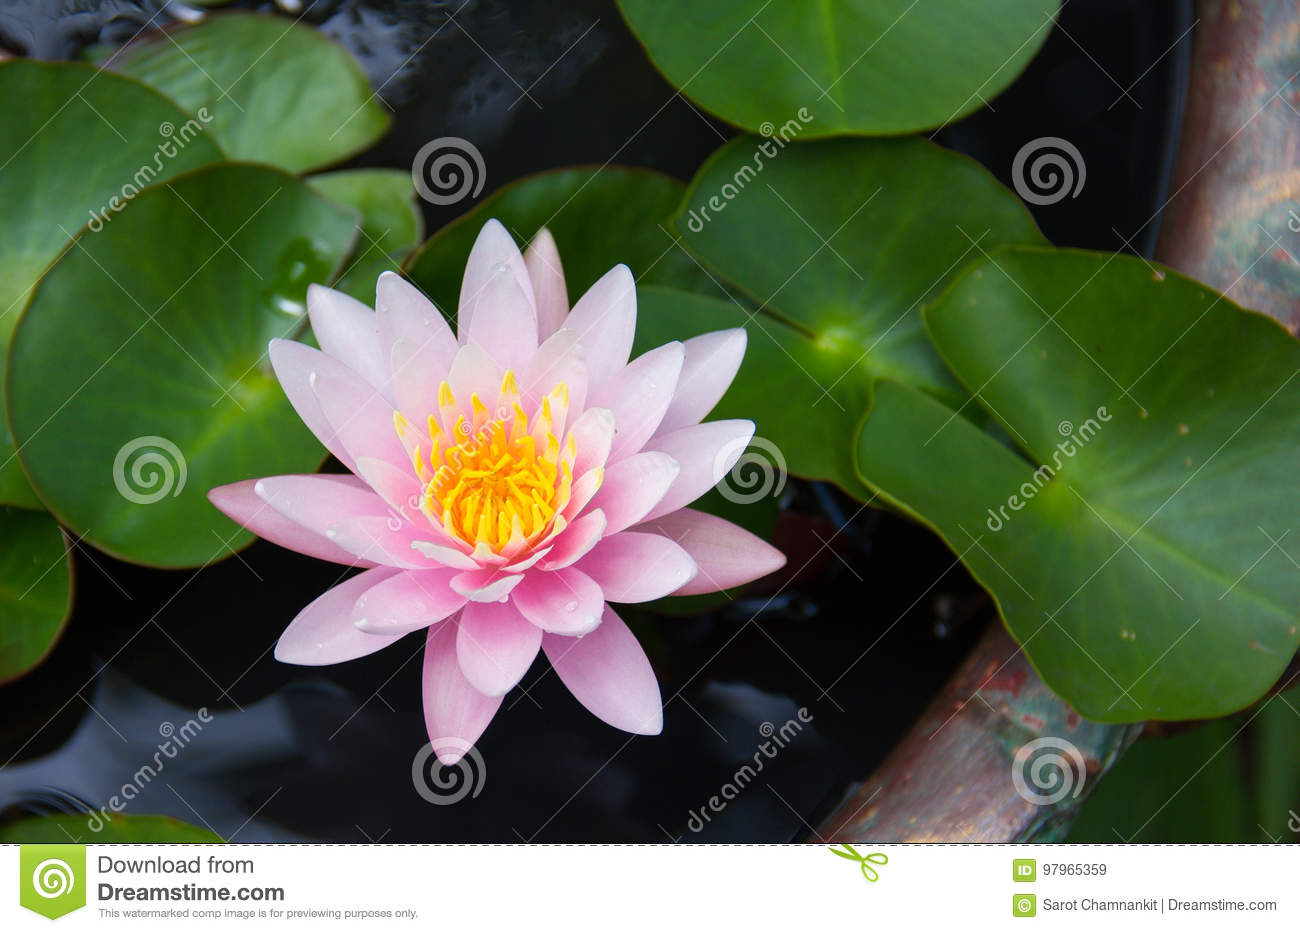 Pink lotus flower bloom in a pond stock image image of green download pink lotus flower bloom in a pond stock image image of green izmirmasajfo